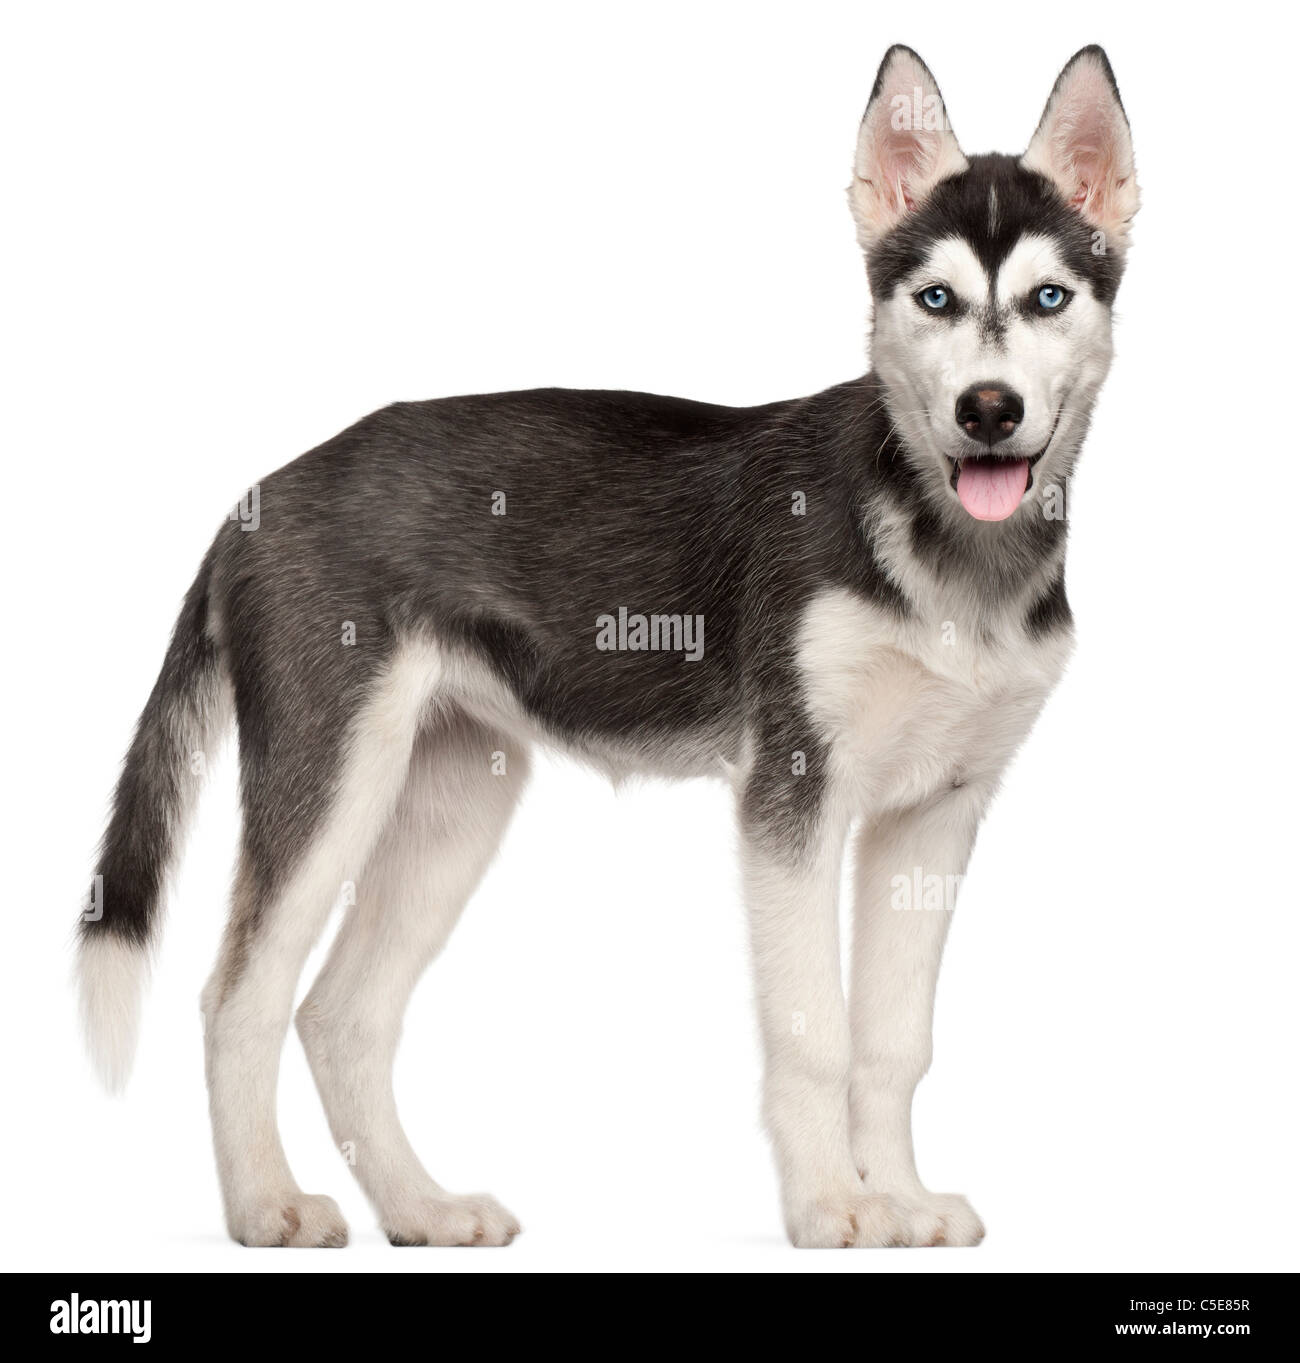 Siberian Husky puppy, 4 months old, standing in front of white background - Stock Image